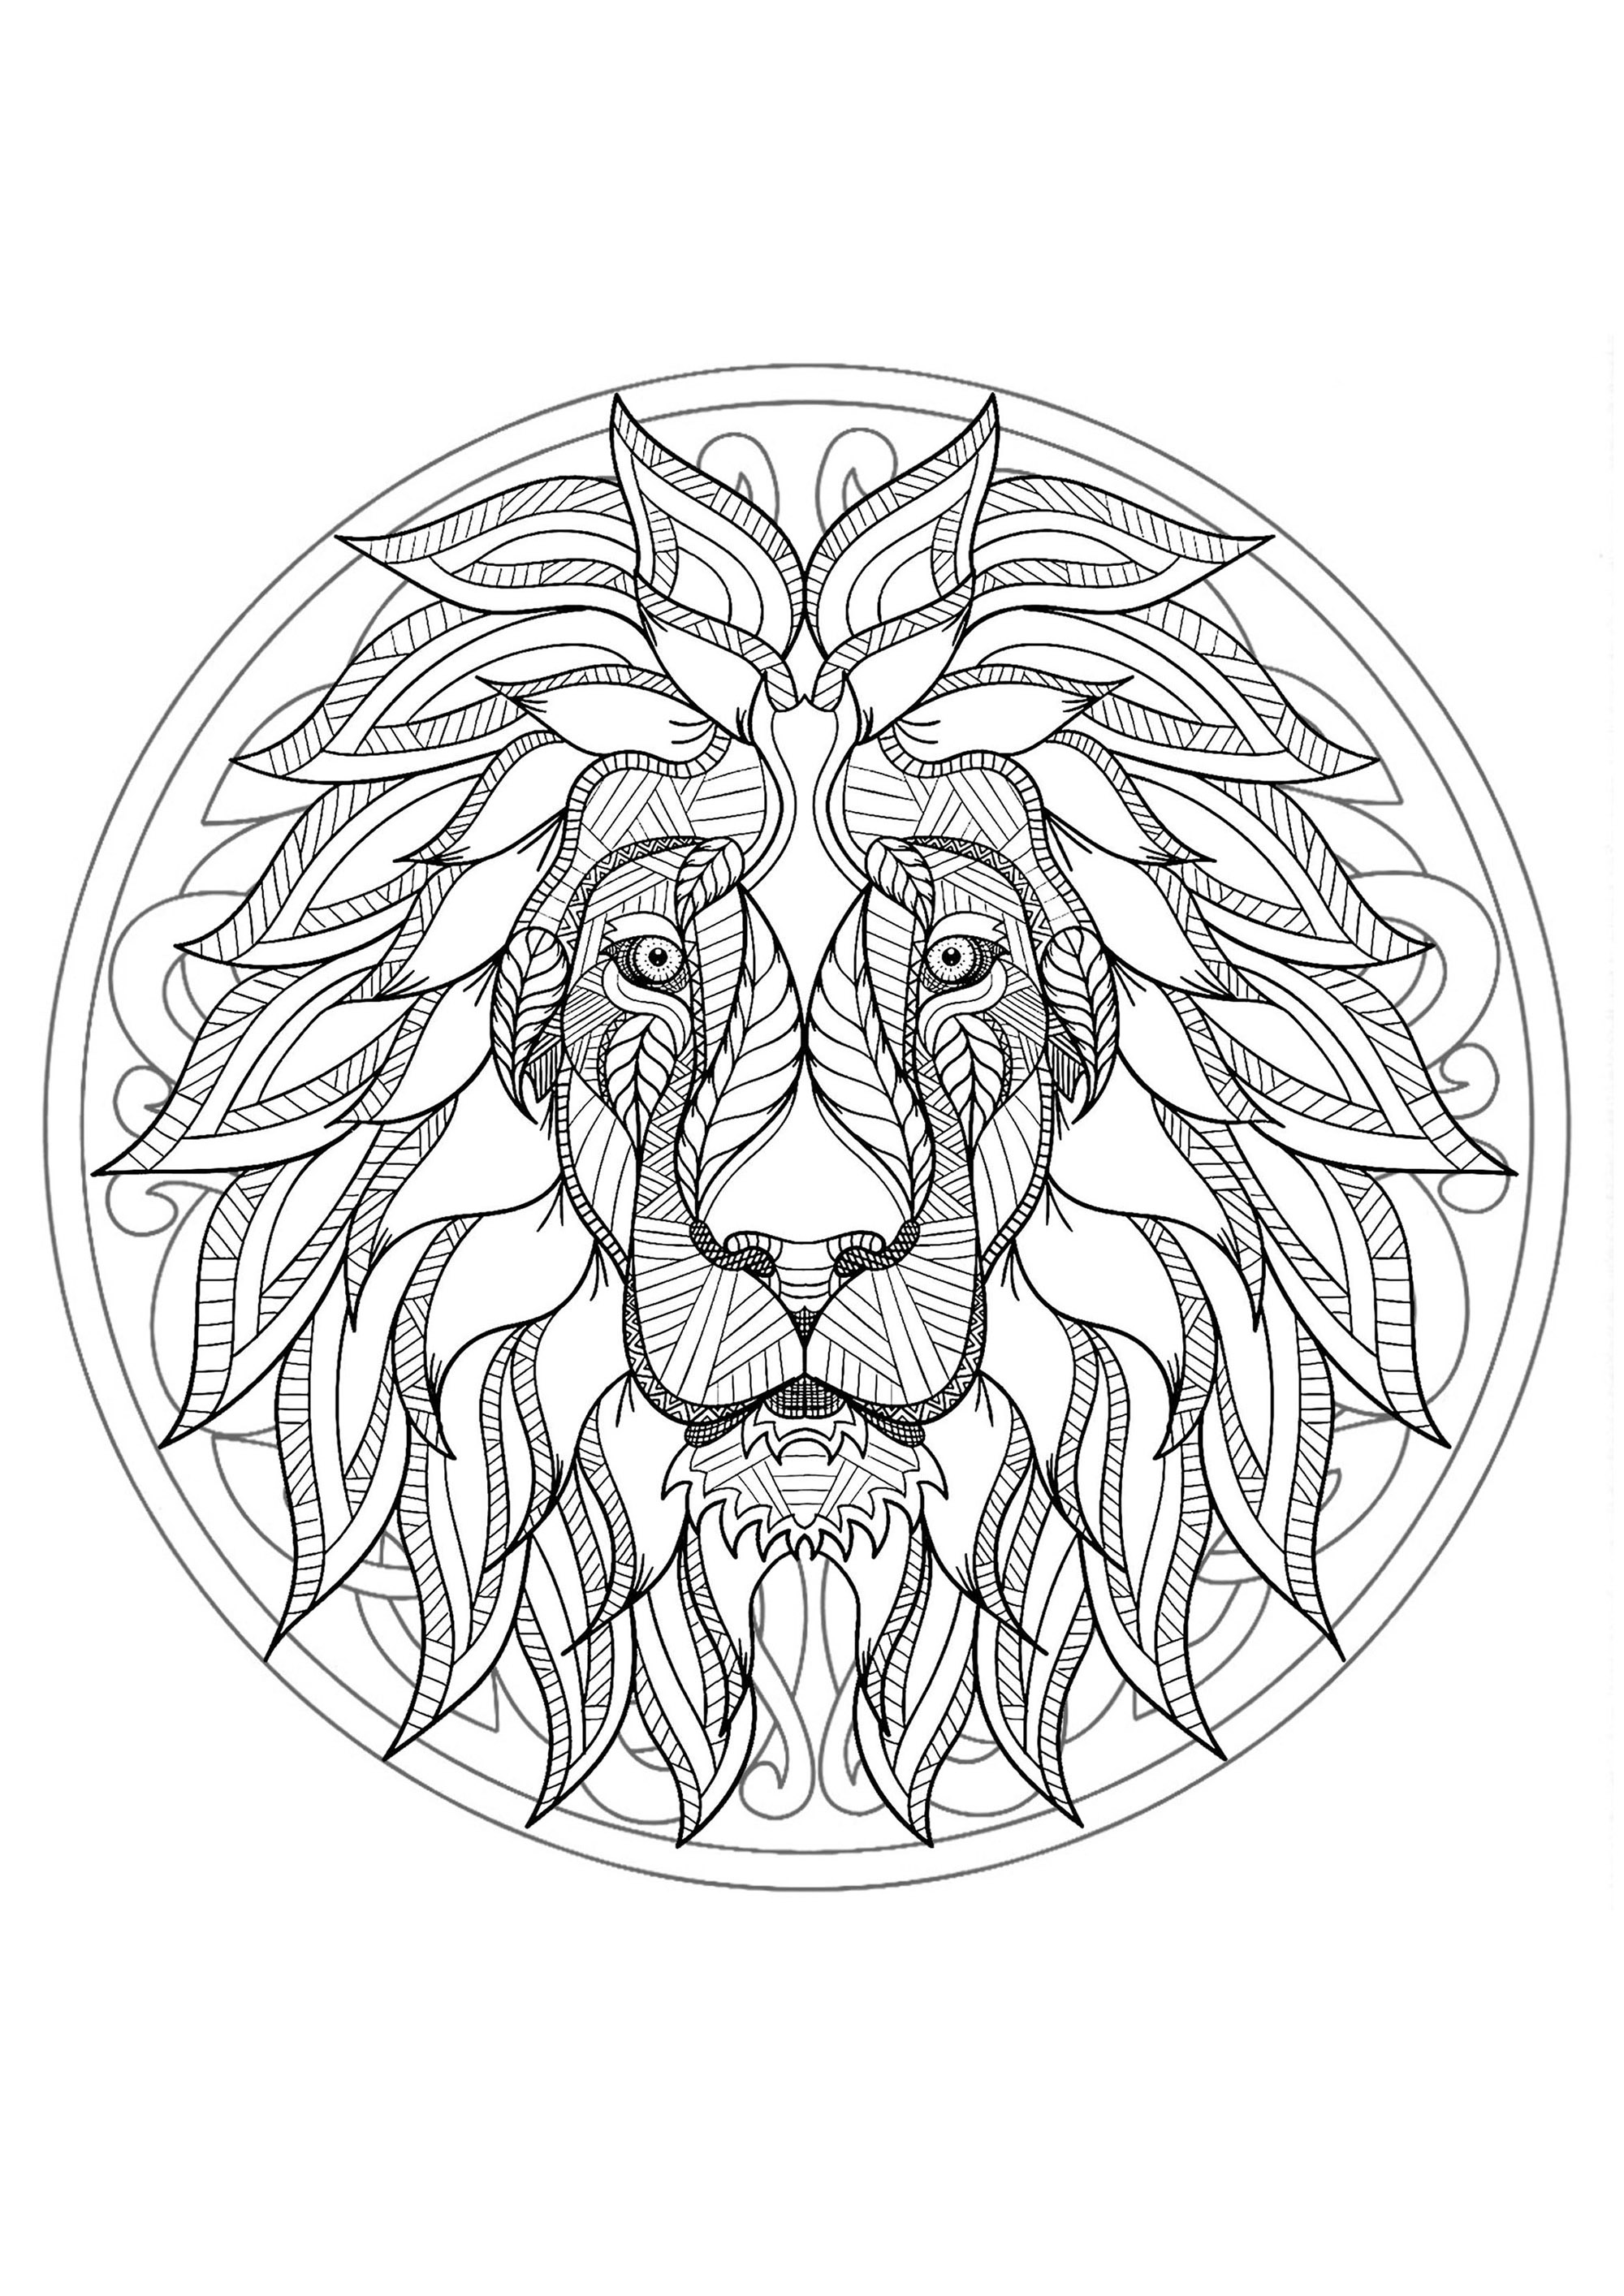 Complex Mandala Coloring Page With Majestic Lion Head 1